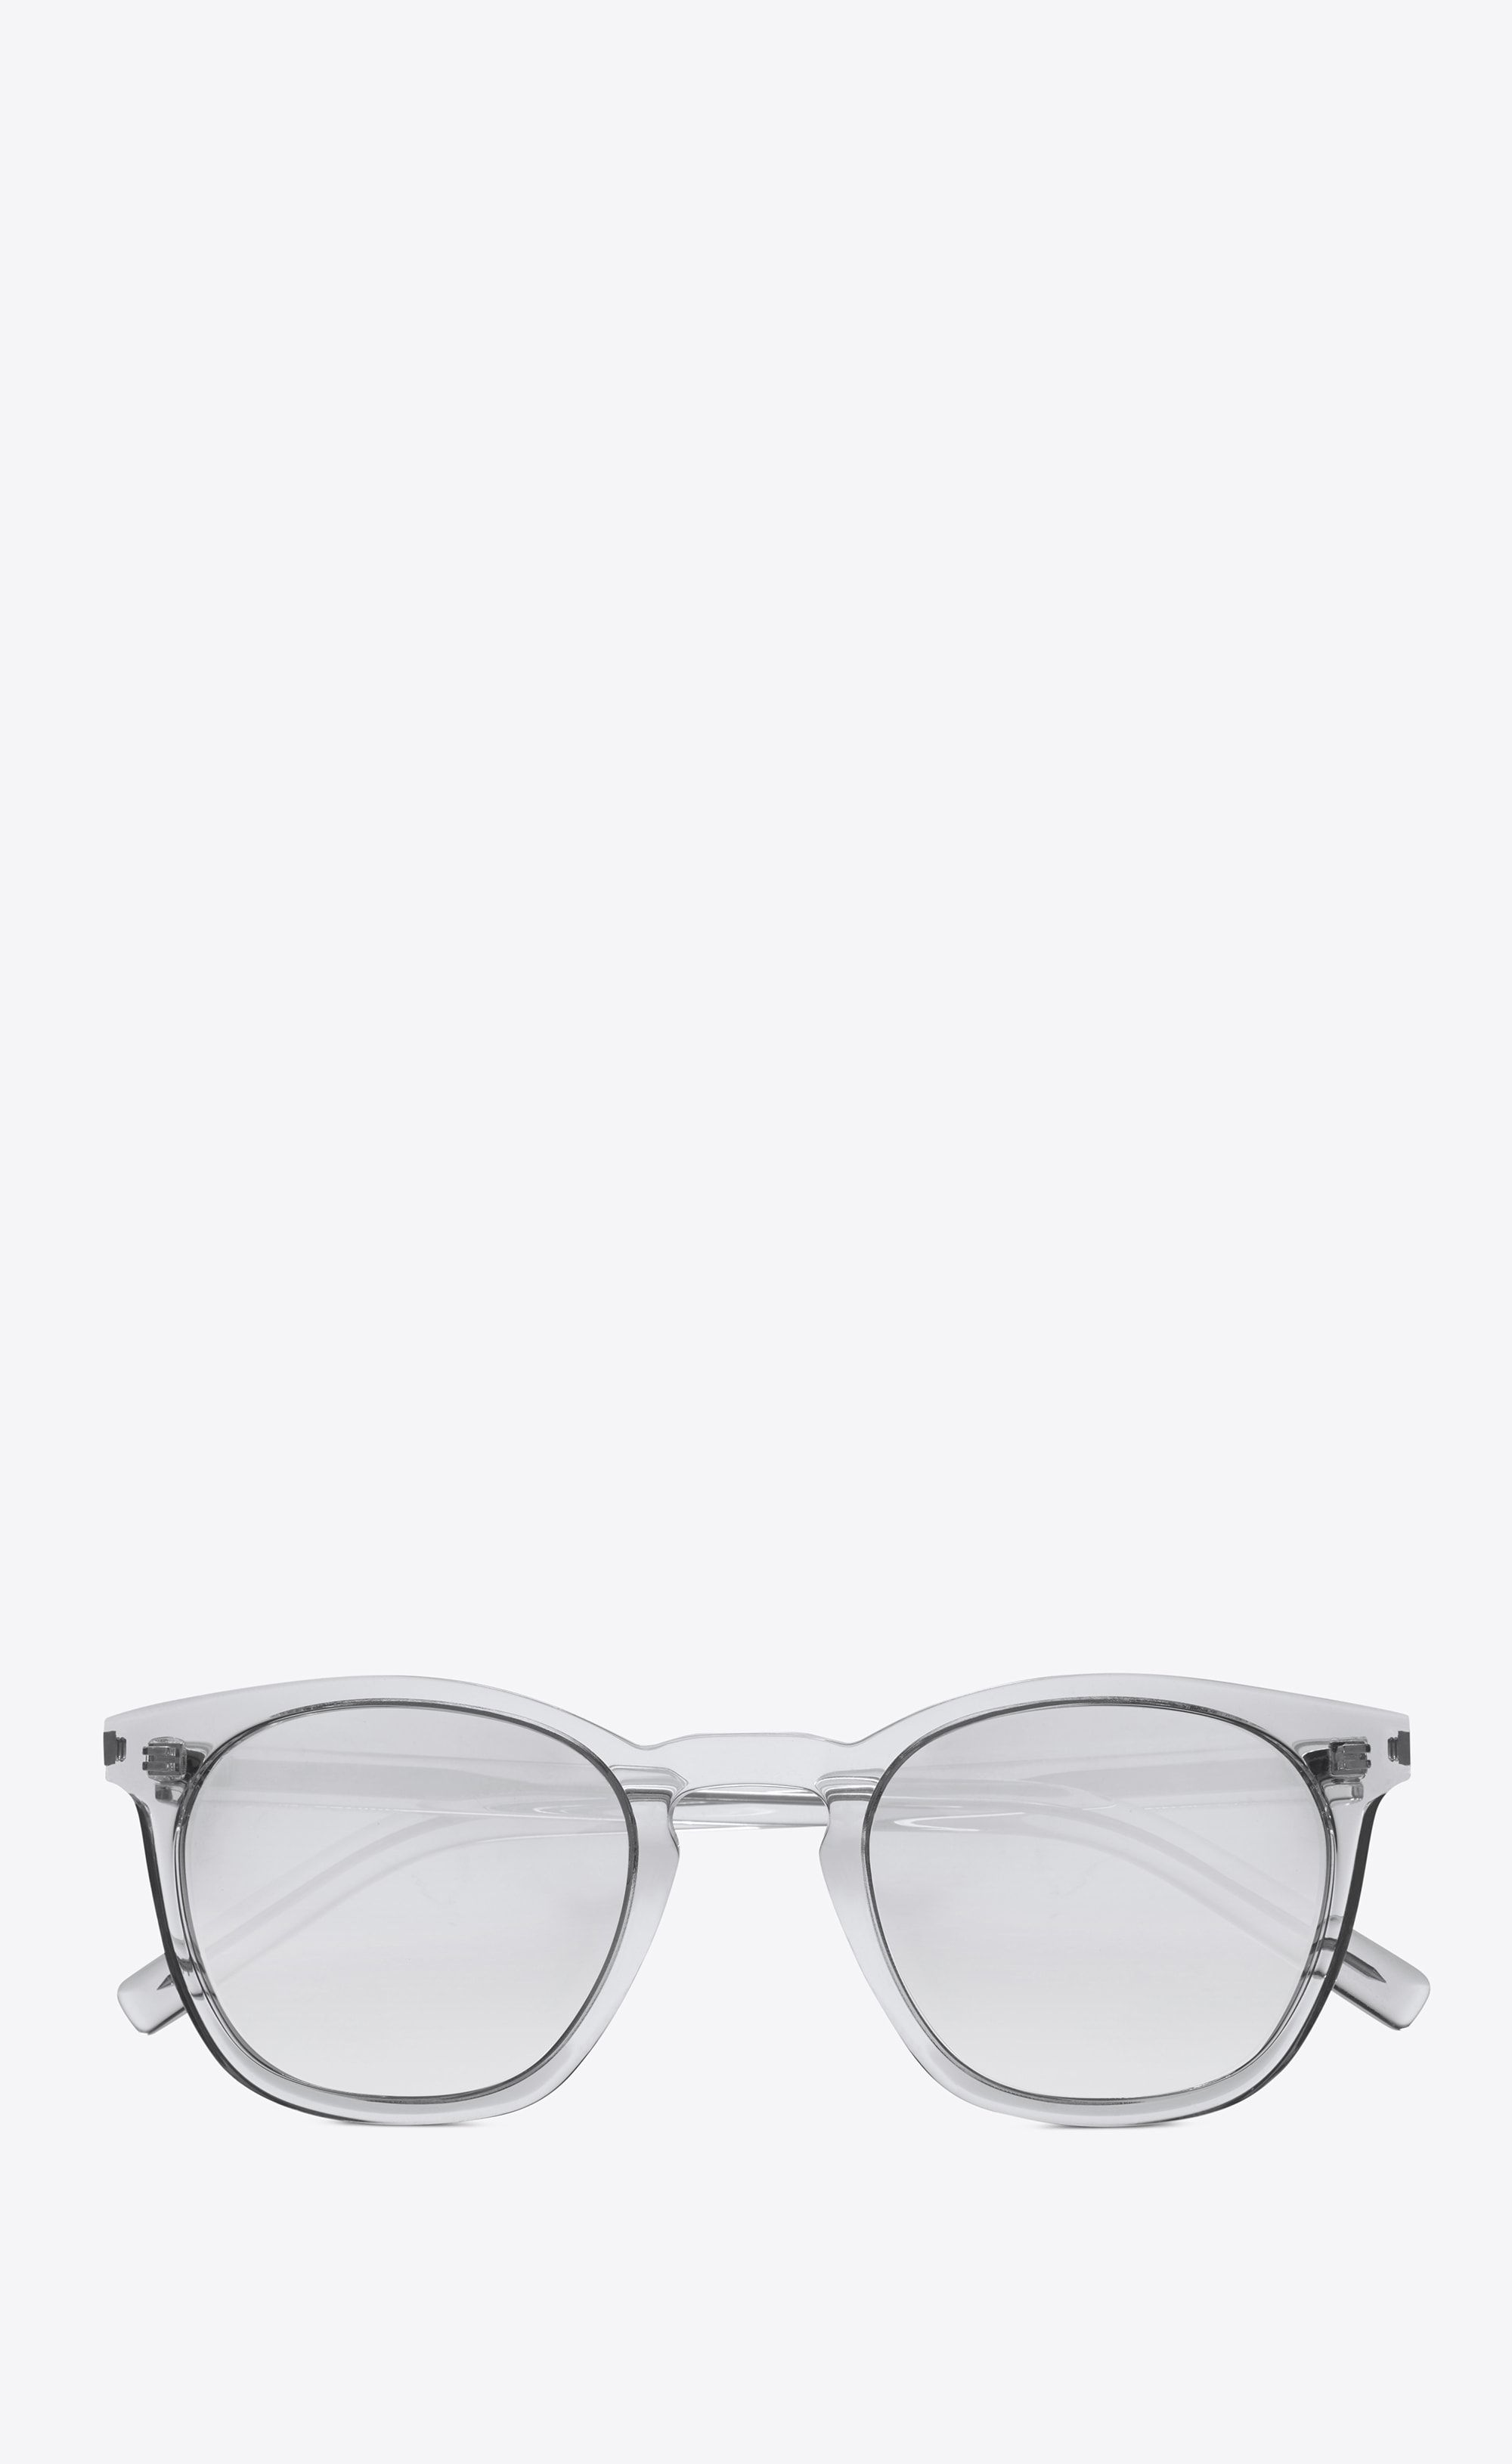 68d911fa43f03 Saint Laurent 28 Sunglasses In Clear Acetate With Light Silver Mirrored  Lenses